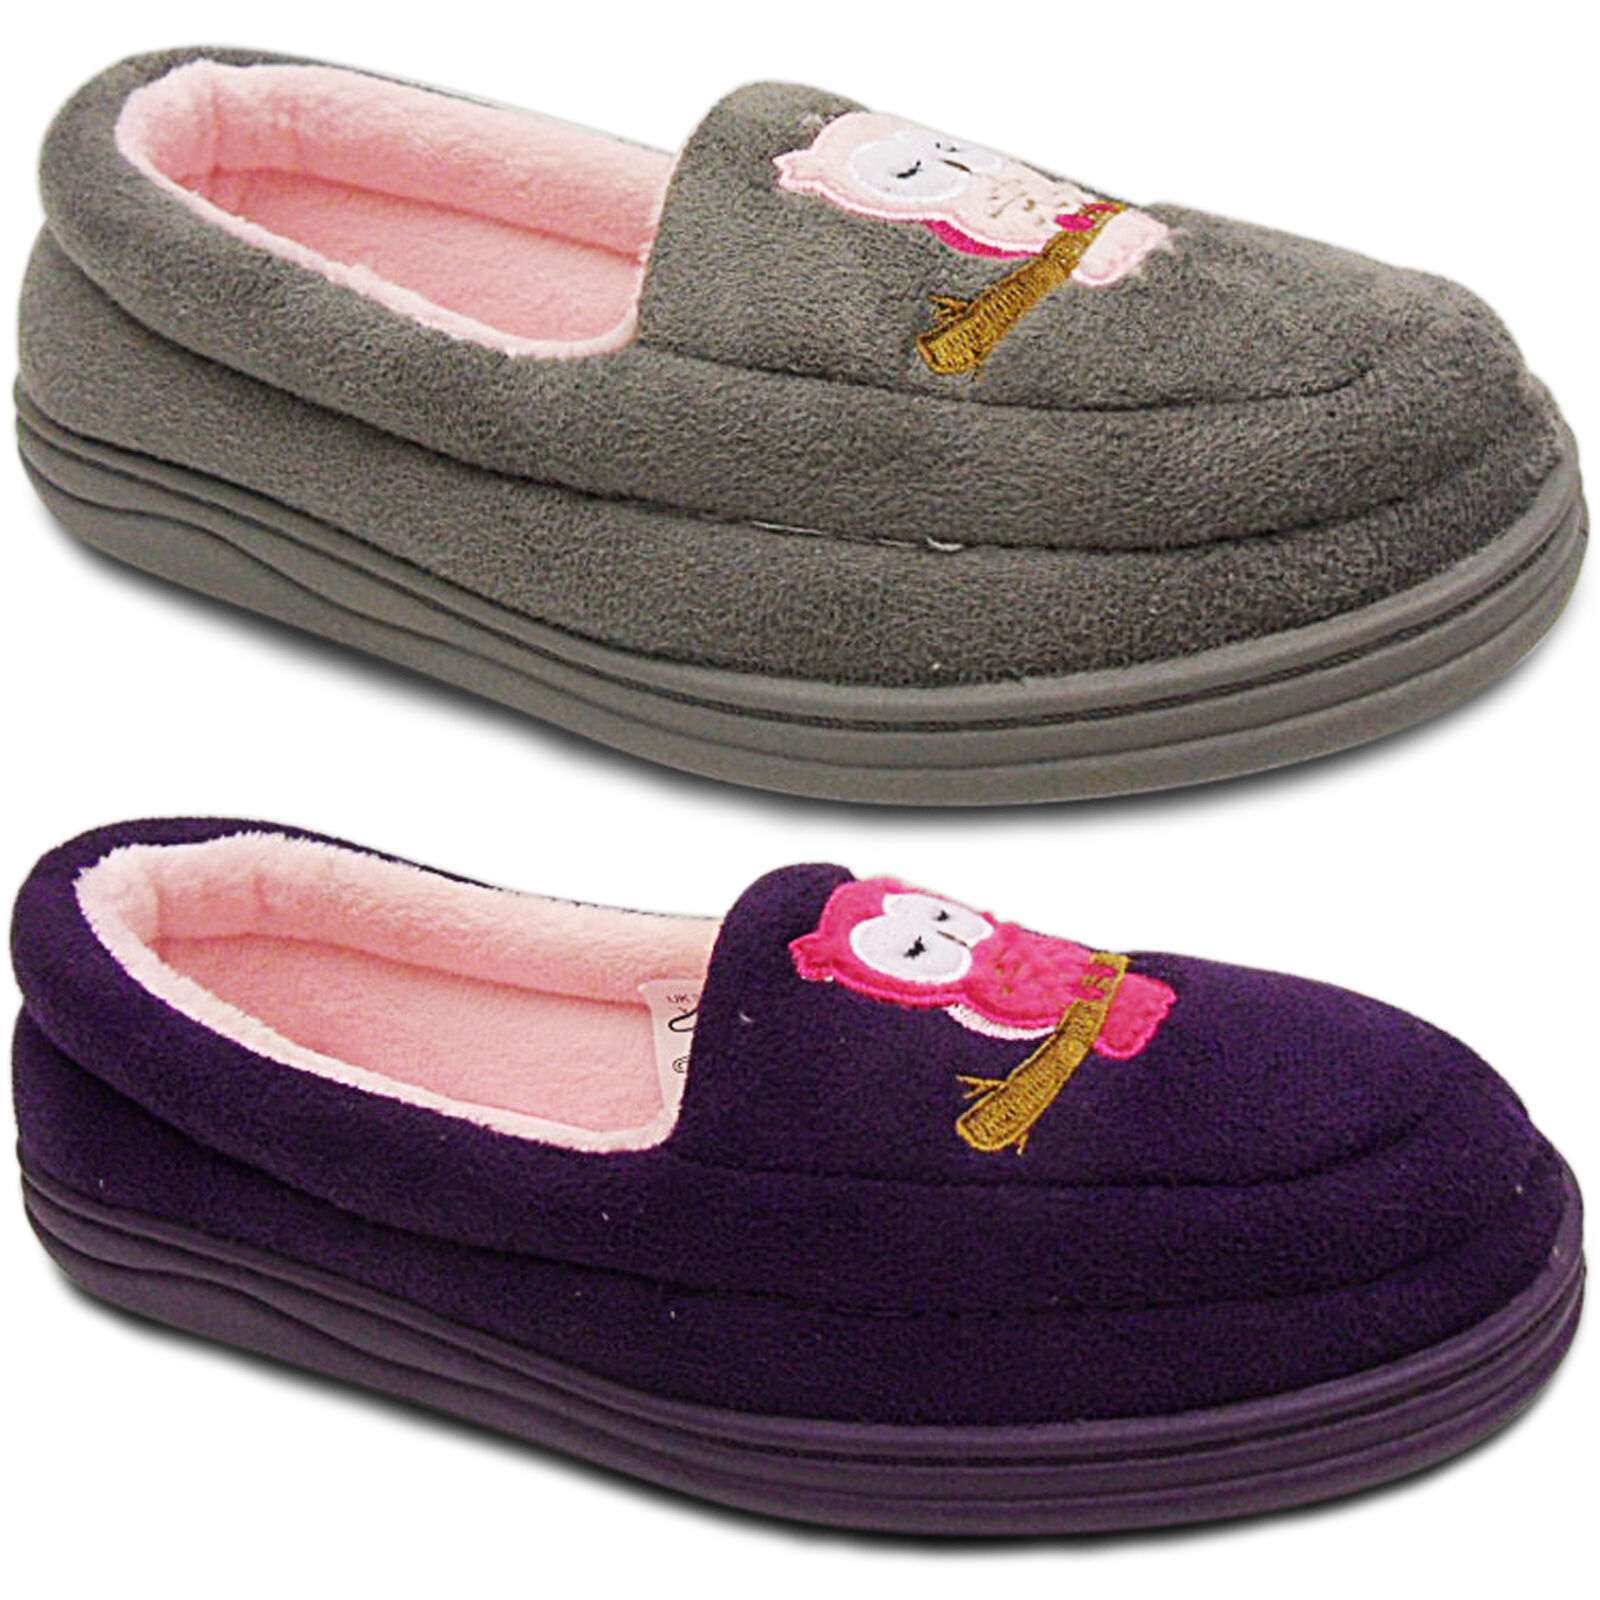 NEW COMFORT  LADIES MOCCASIN OWL COMFORT NEW CUSHIONED LOW WEDGE HEEL SLIPPERS SHOES SIZE c7f166